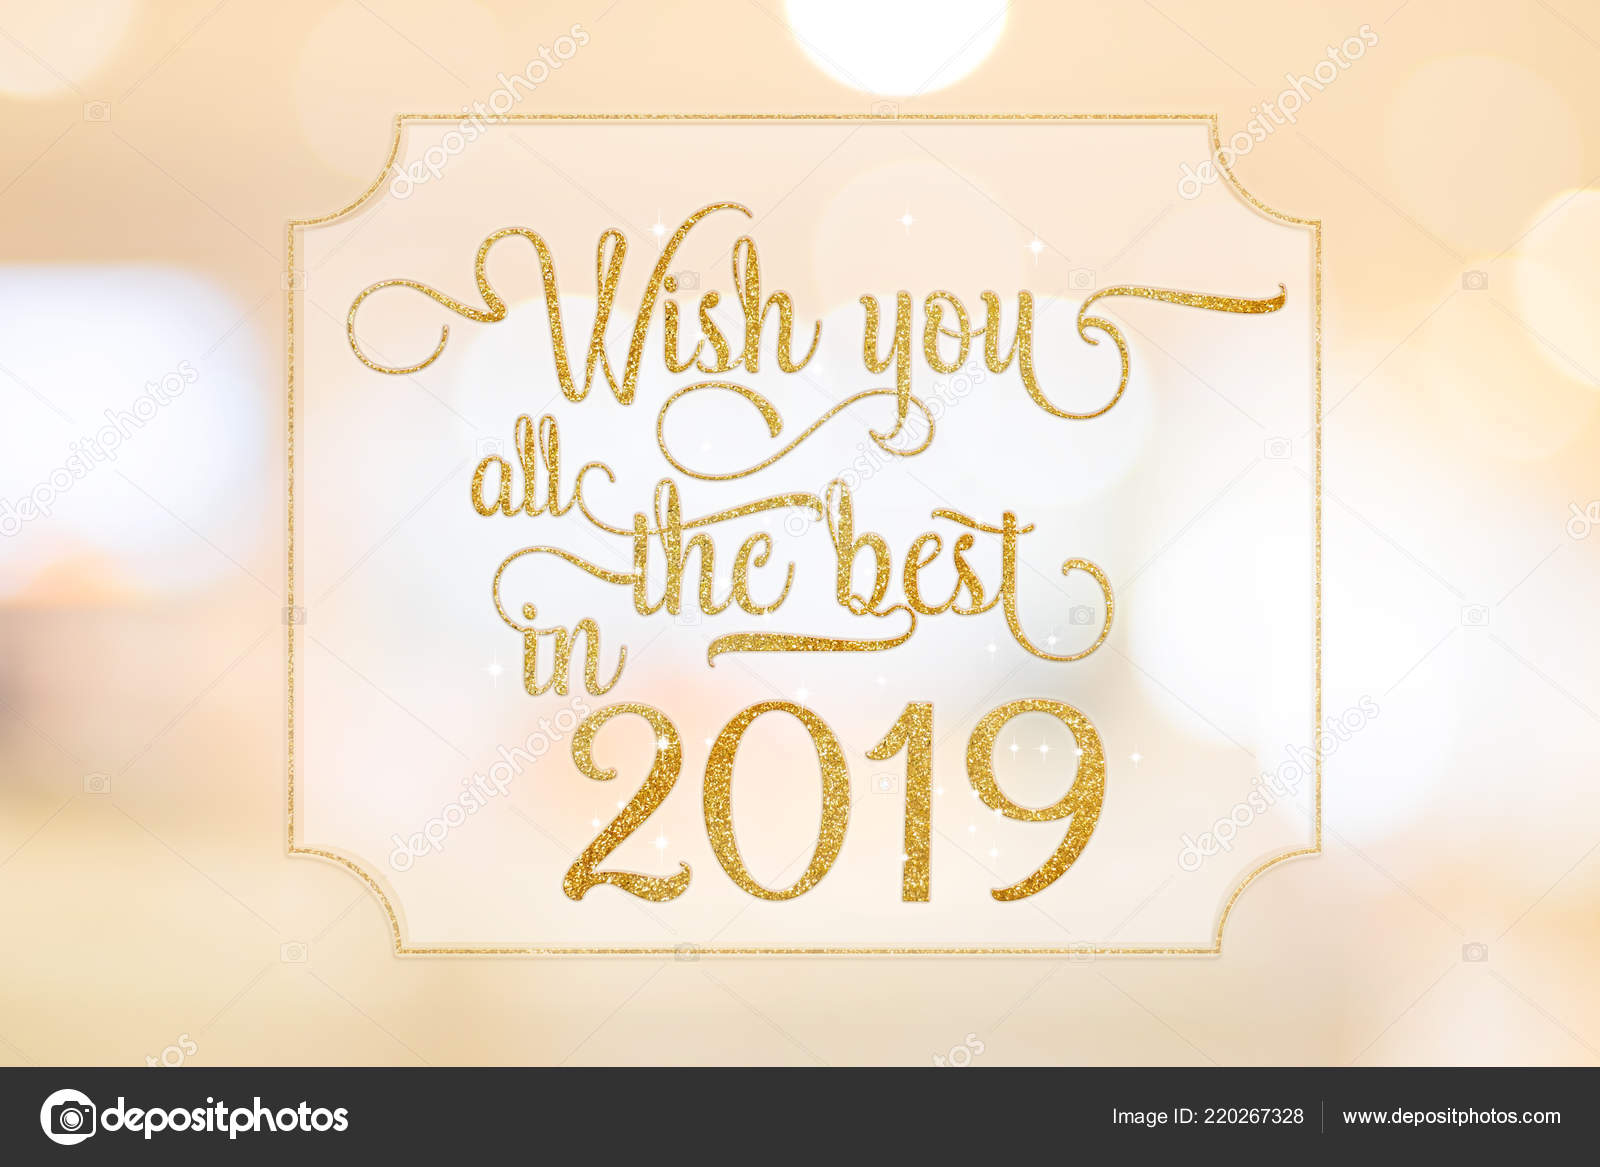 wish you all best 2019 gold glitter word white frame stock photo